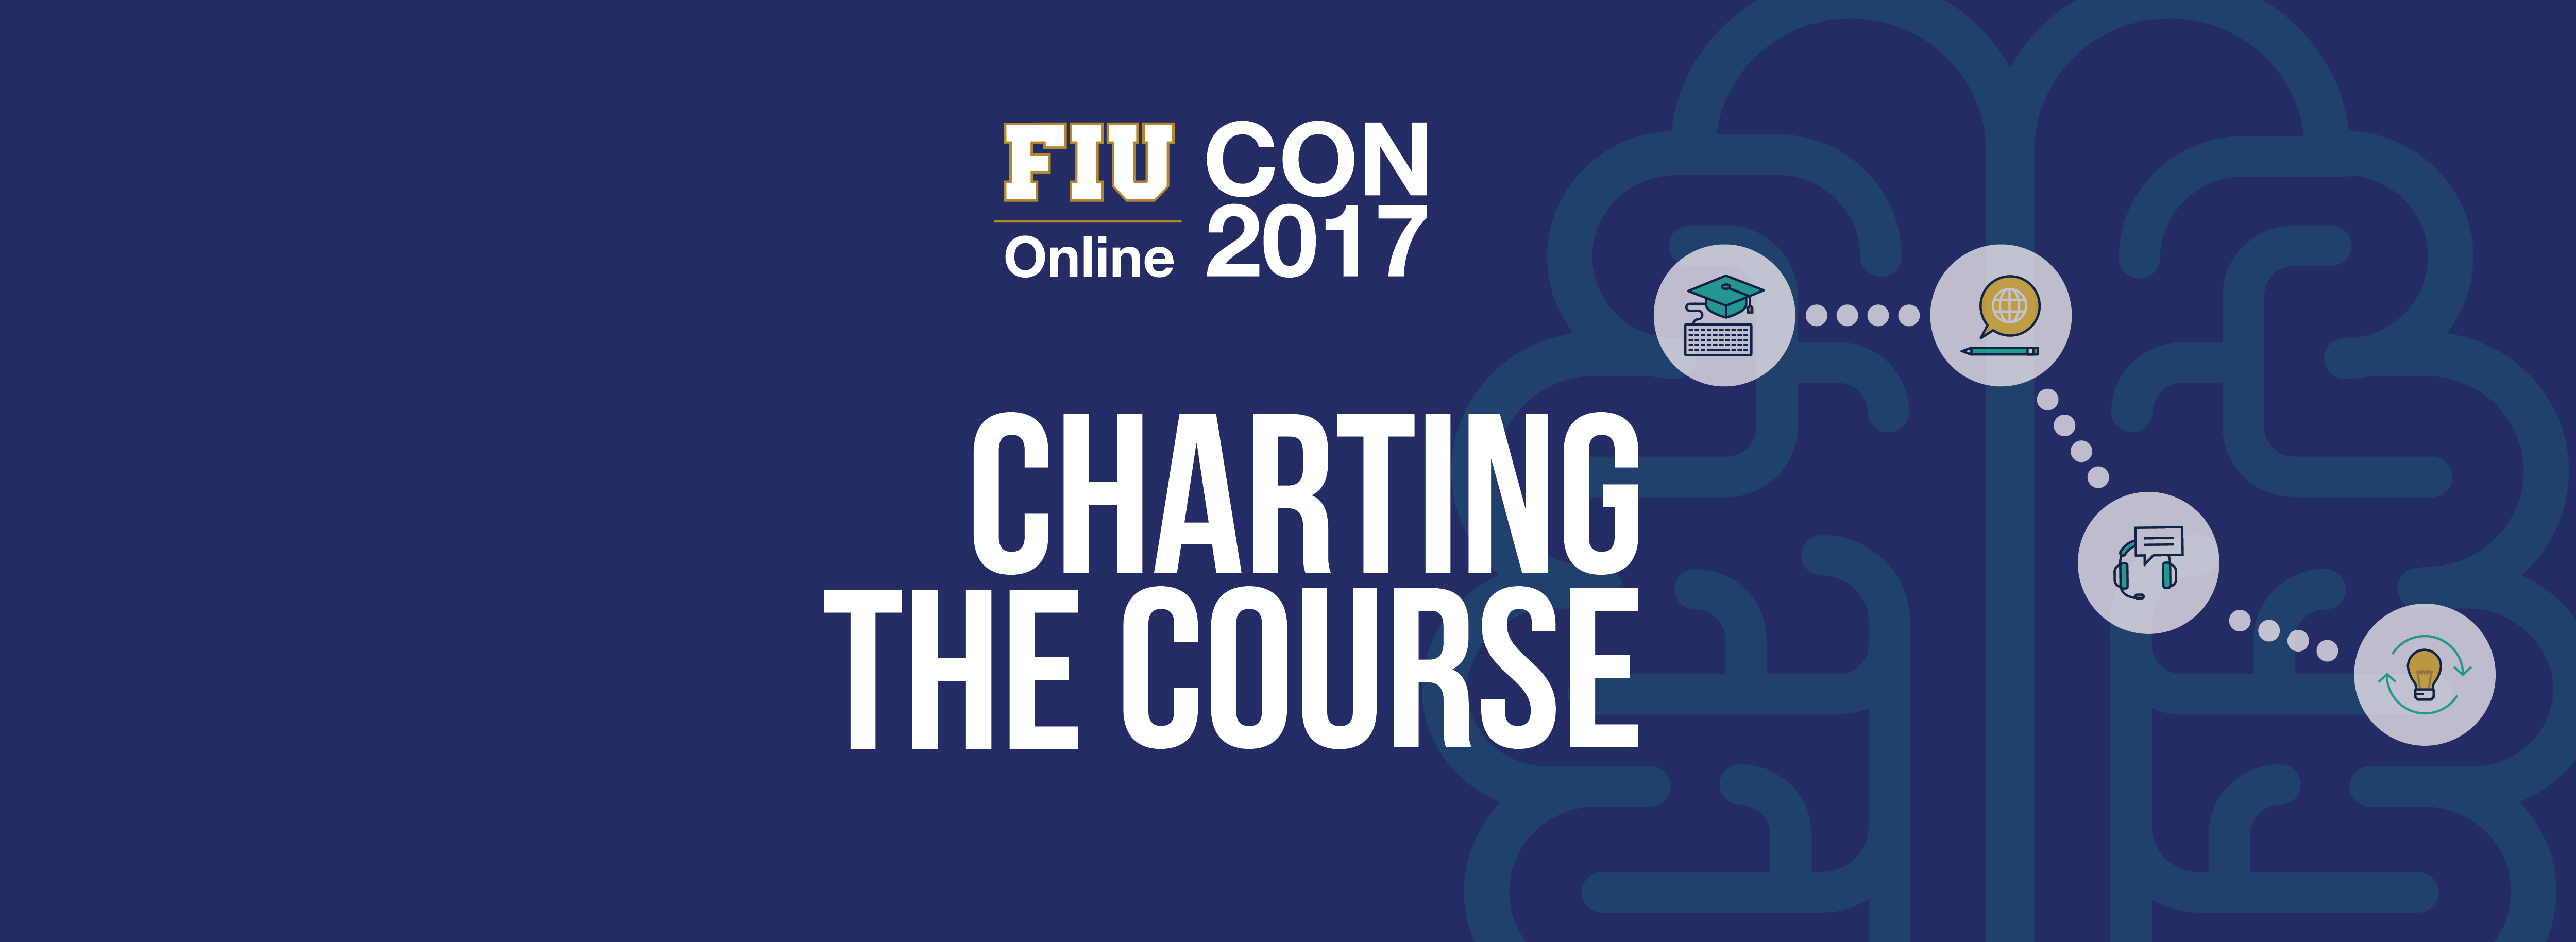 FIU Online CON2016: Learning Inspired banner